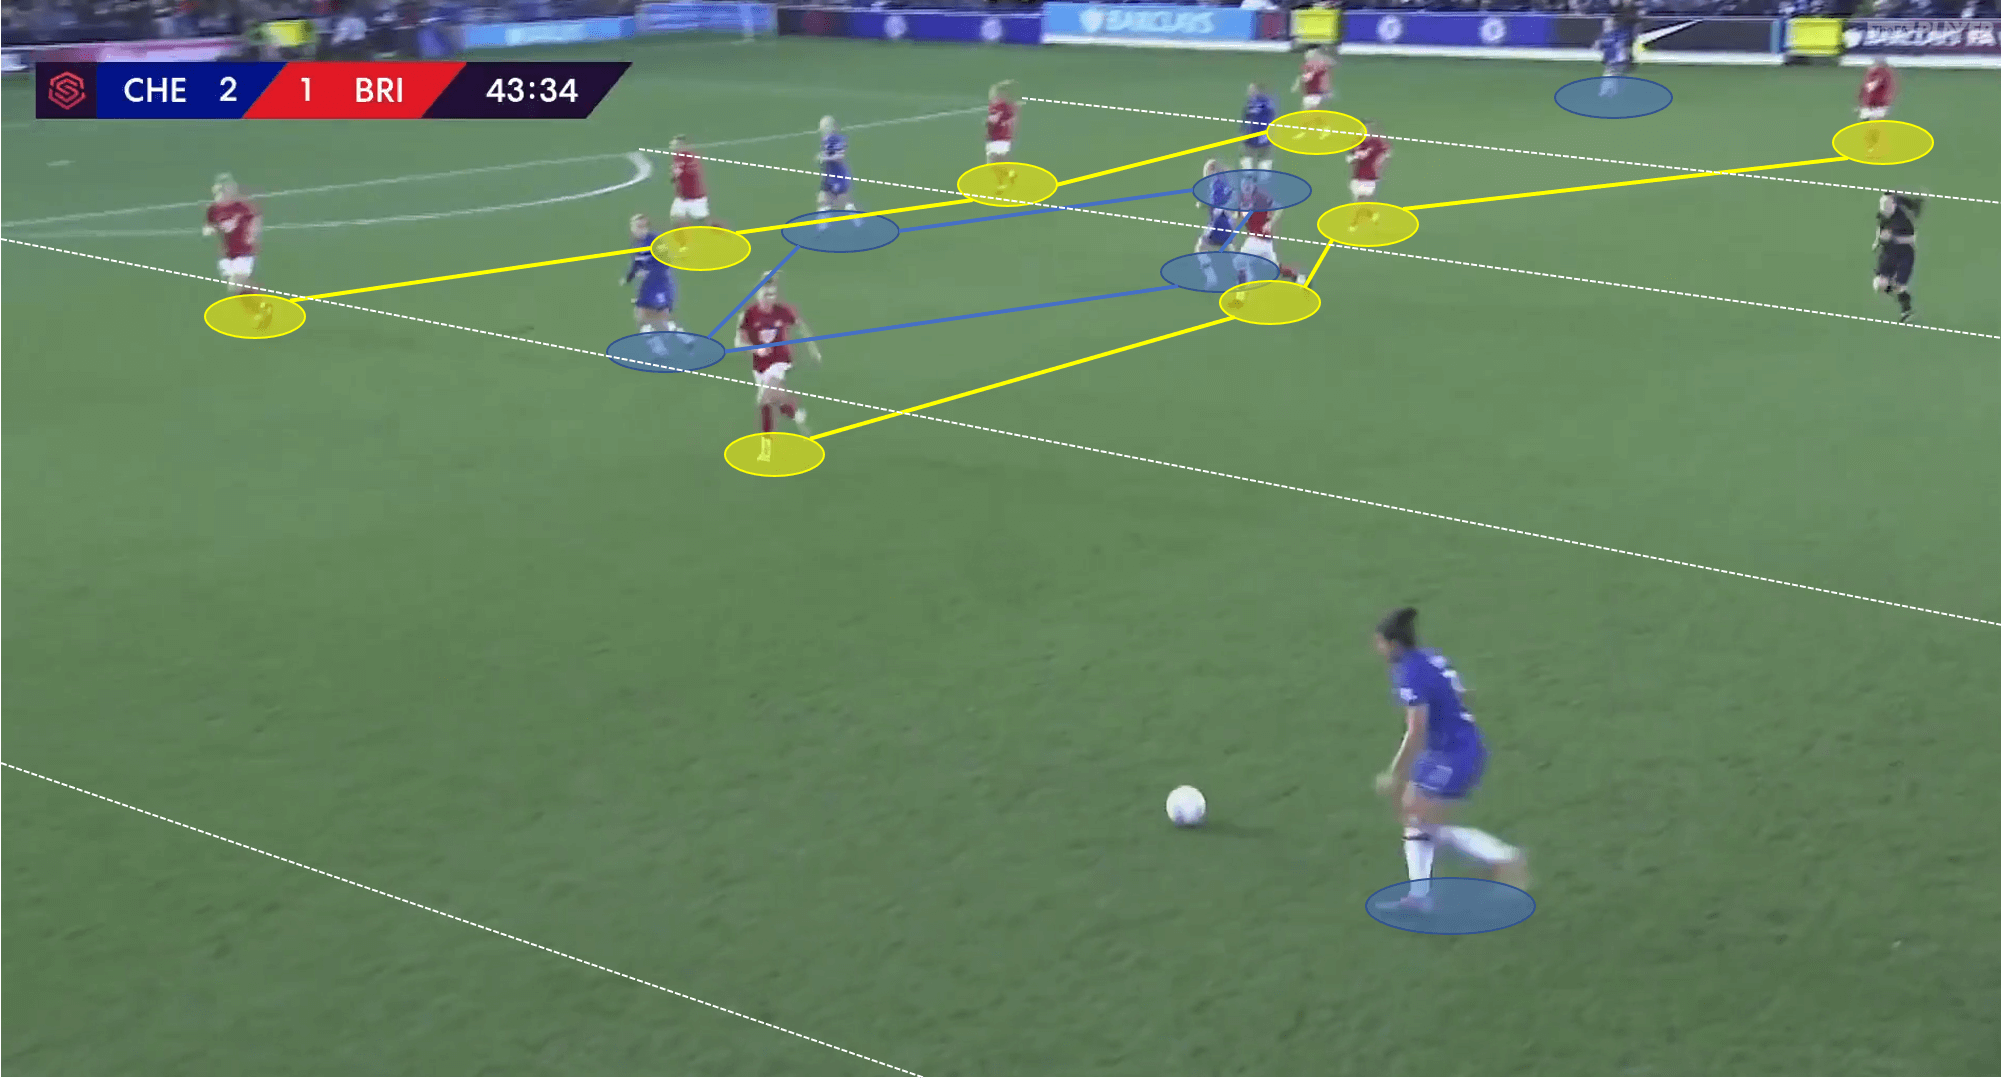 FAWSL 2019/20: Chelsea Women vs Bristol City Women - tactical analysis tactics